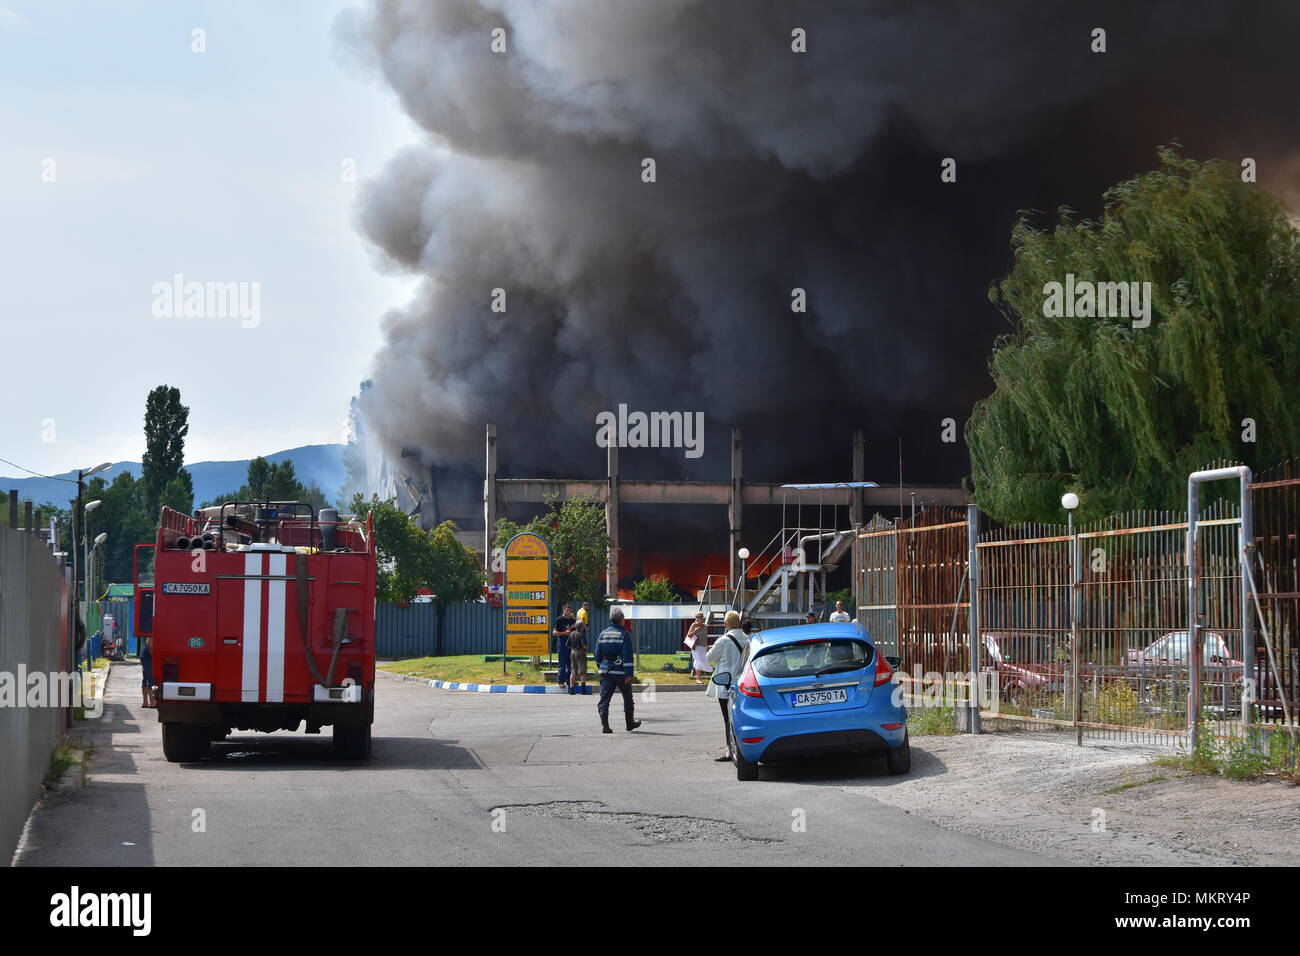 Sofia, Bulgaria - July 15, 2017: Big fire in garment warehouse right next to a petrol station in Kazichene - Sofia outskirts. Firefighters just arrive - Stock Image